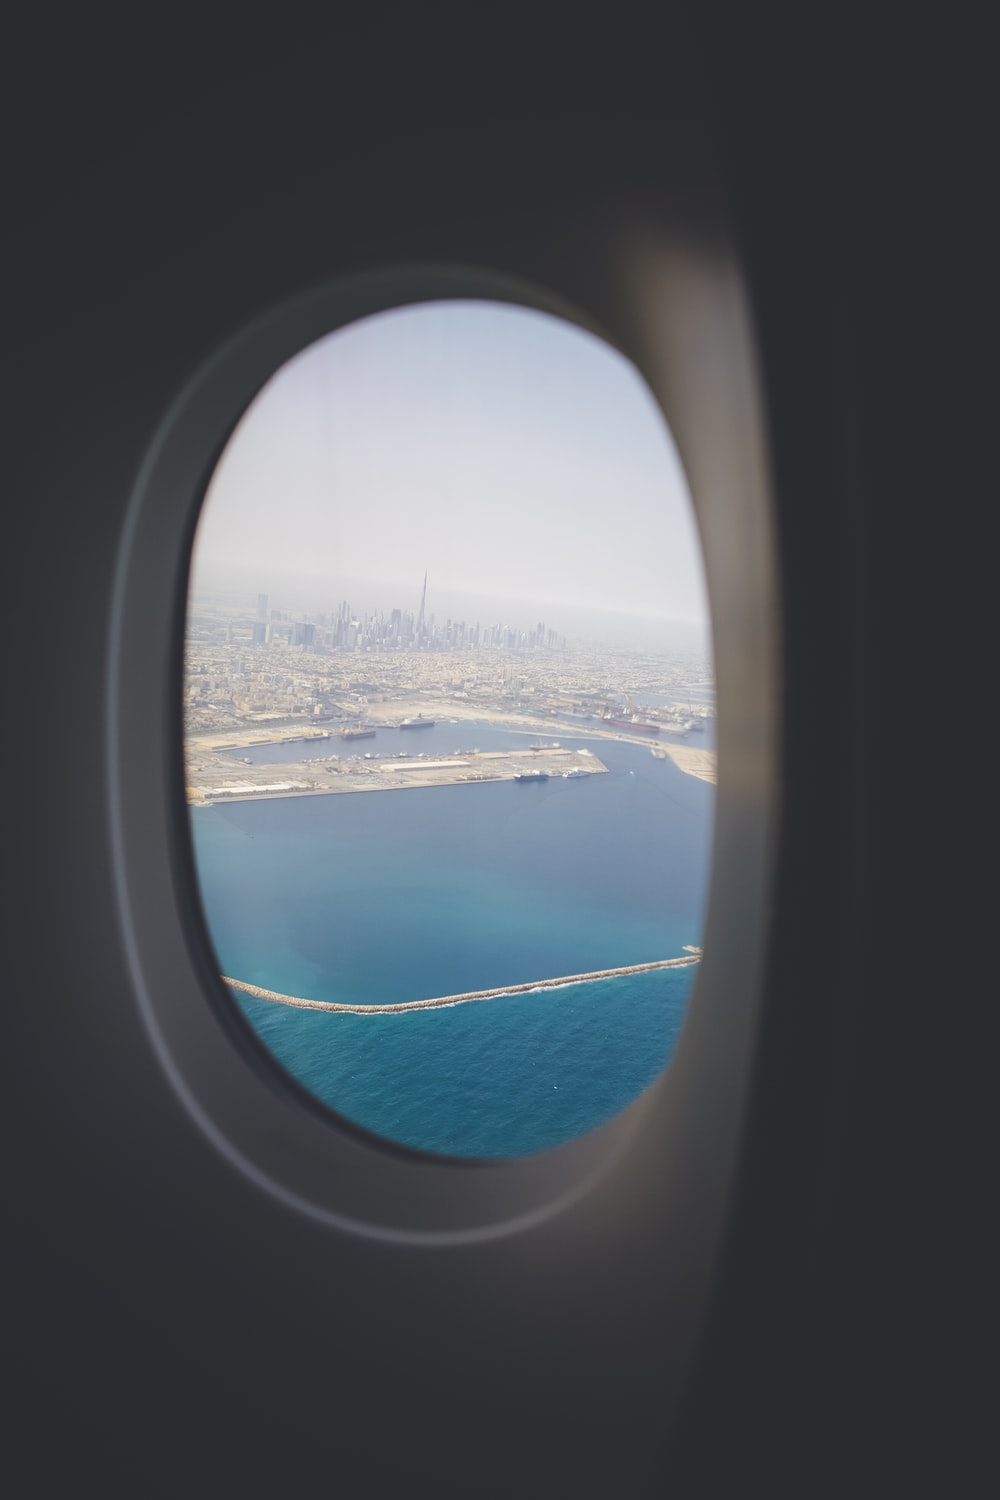 plane window during daytime